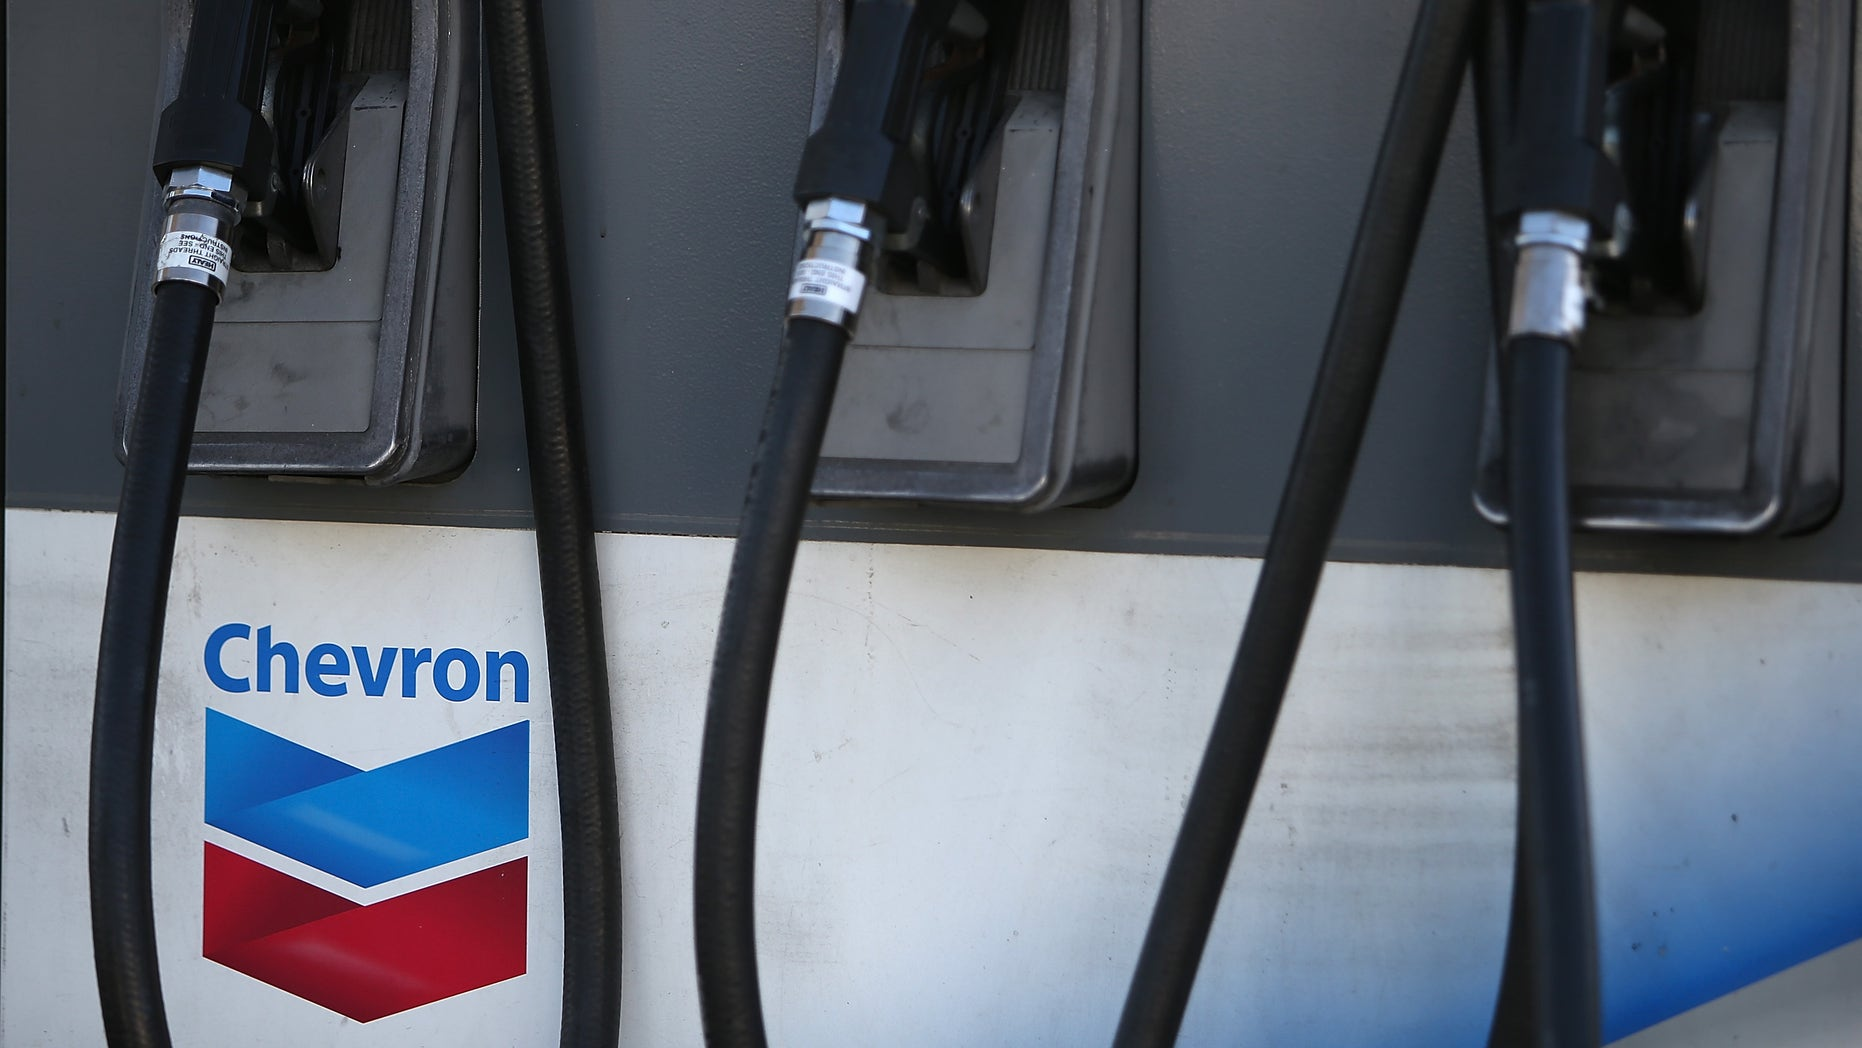 SAN FRANCISCO, CA - MAY 02:  The Chevron logo is displayed on a gas pump at a Chevron gas station on May 2, 2014 in San Francisco, California.  Chevron Corp. reported a 27 percent plunge in first quarter profits with earnings of $4.51 billion, or $2.36 a share, compare to $6.18 billion, or $3.18 a share, one year ago.  (Photo by Justin Sullivan/Getty Images)